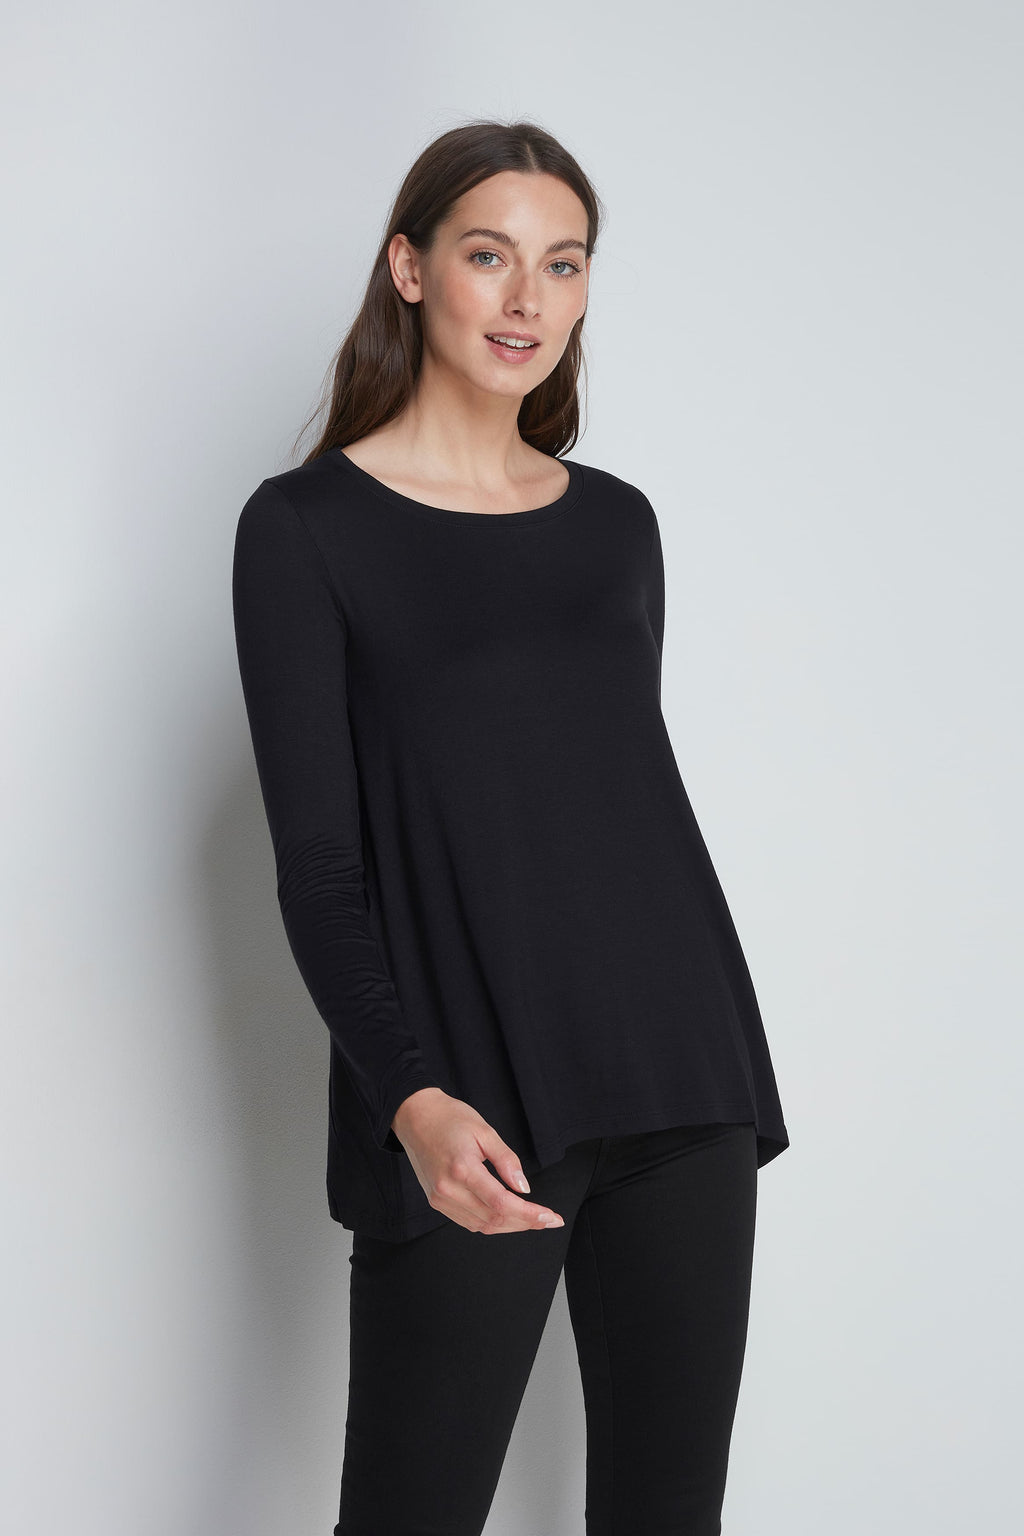 High Quality Long Sleeve A-Line Top - Soft A-Line Top - Flattering Long Sleeve A-Line Top - Loose Fit Black A-Line Top